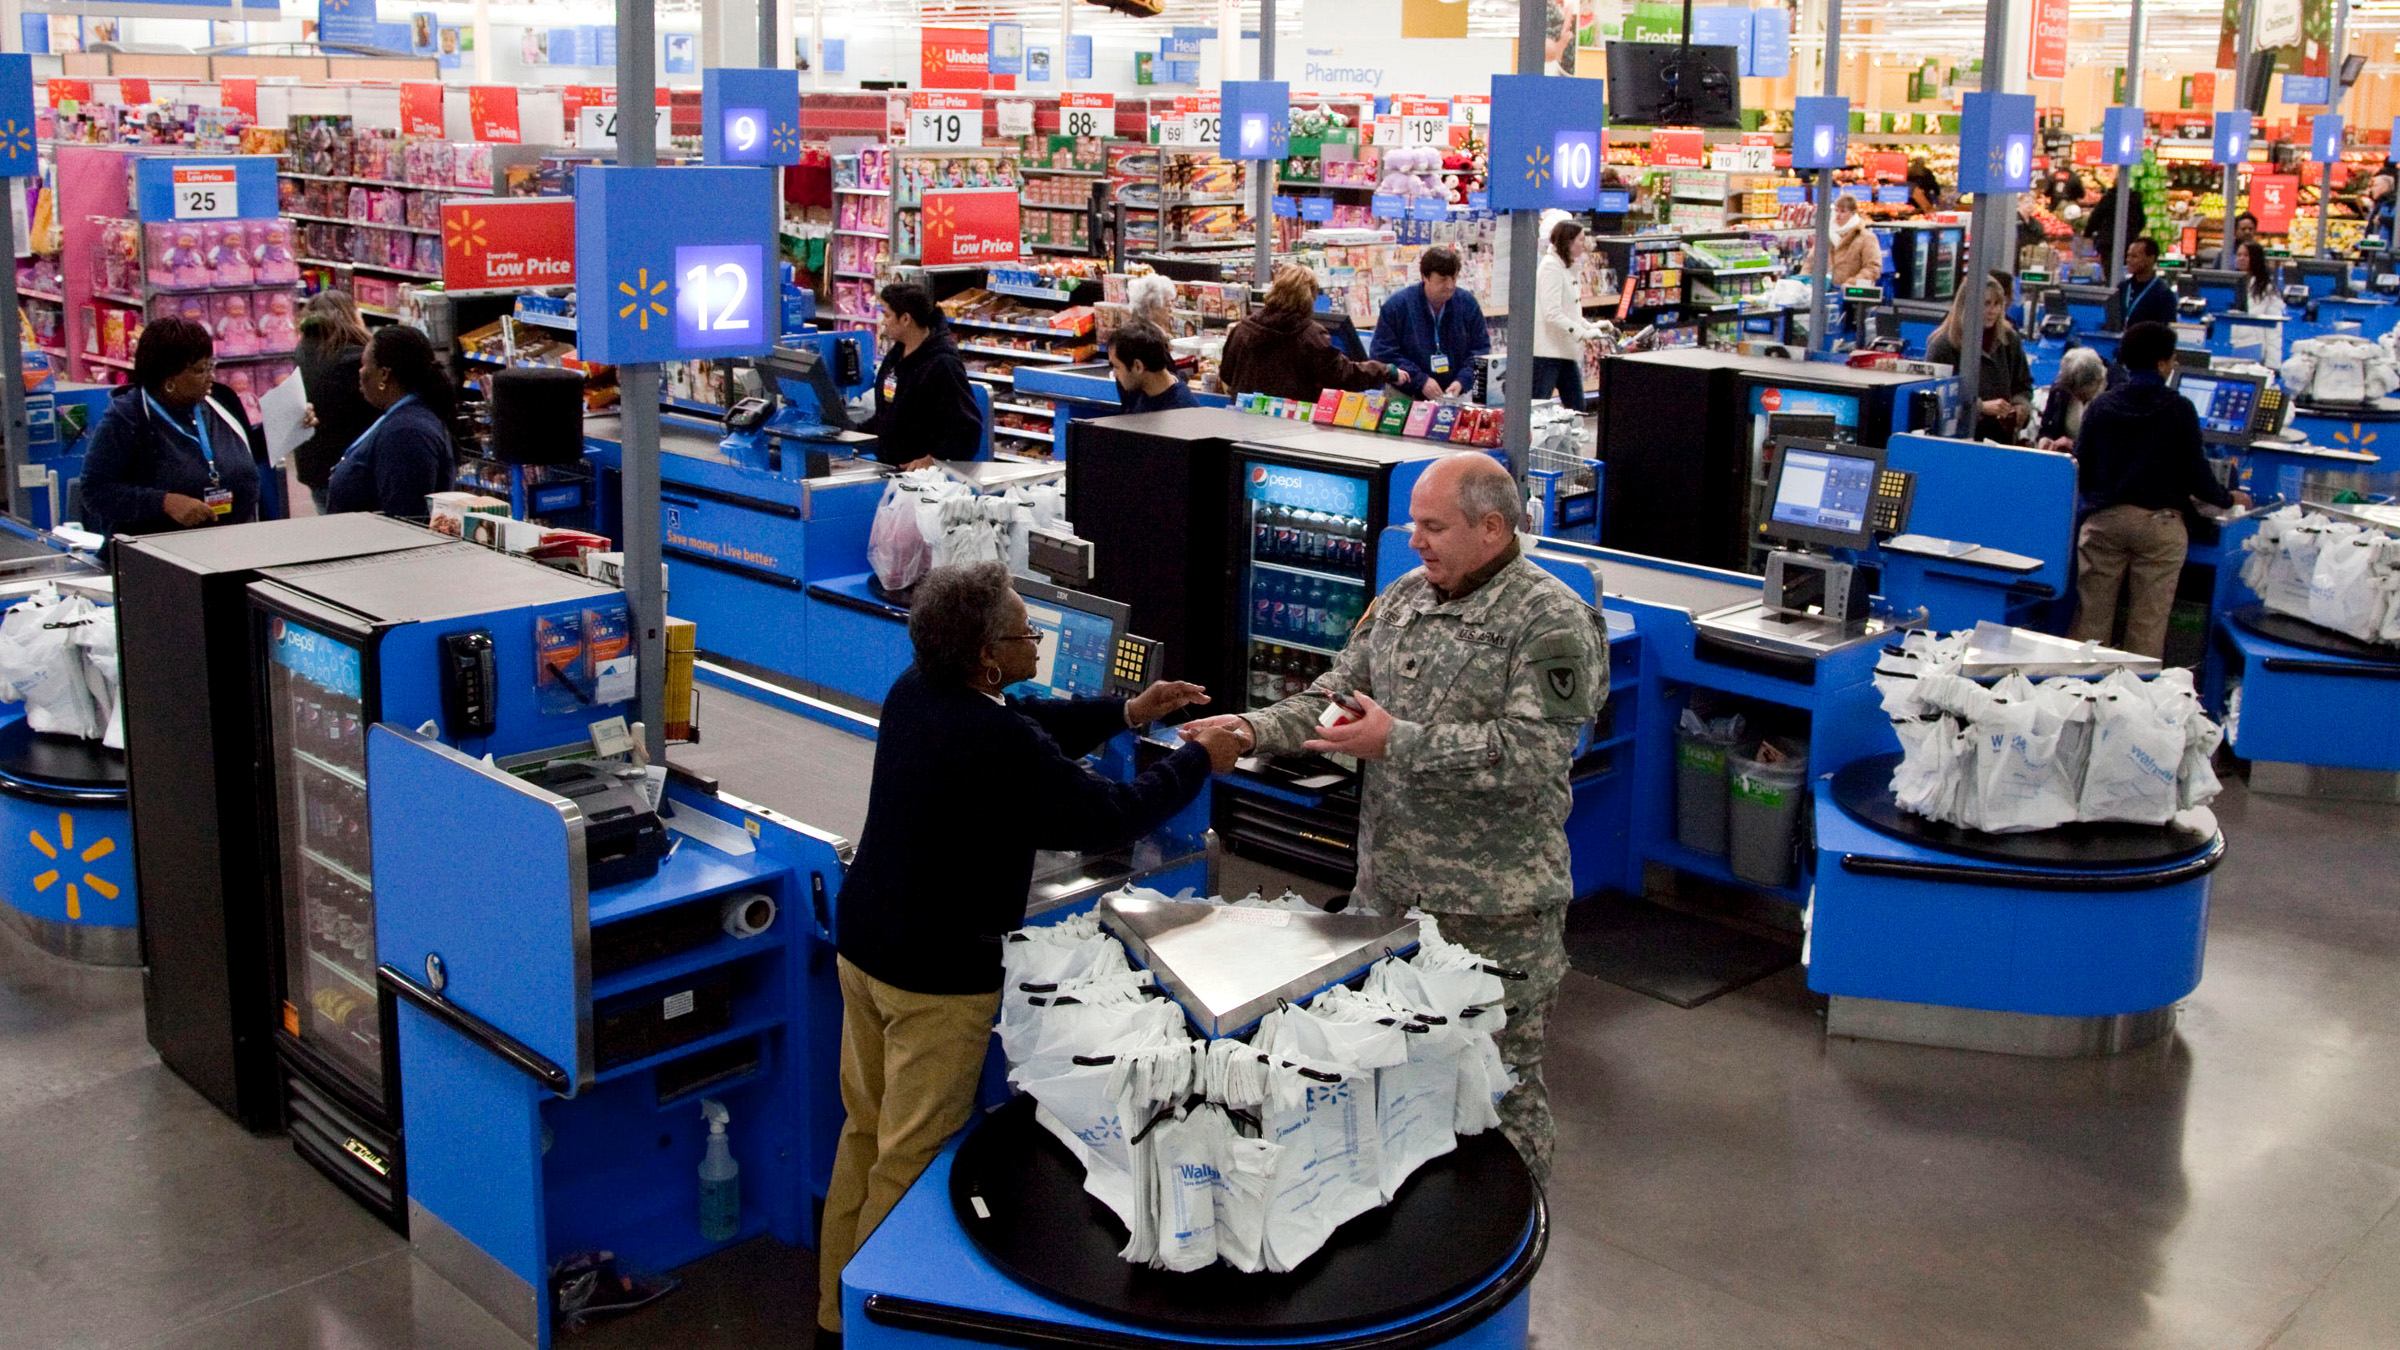 In this photo taken Dec. 15, 2010, the check-out inside a Wal-Mart store in Alexandria, Va., is shown. The battleground for the biggest fight in retailing today is being played out along this suburban highway. Going head-to-head: Wal-Mart against everyone else.